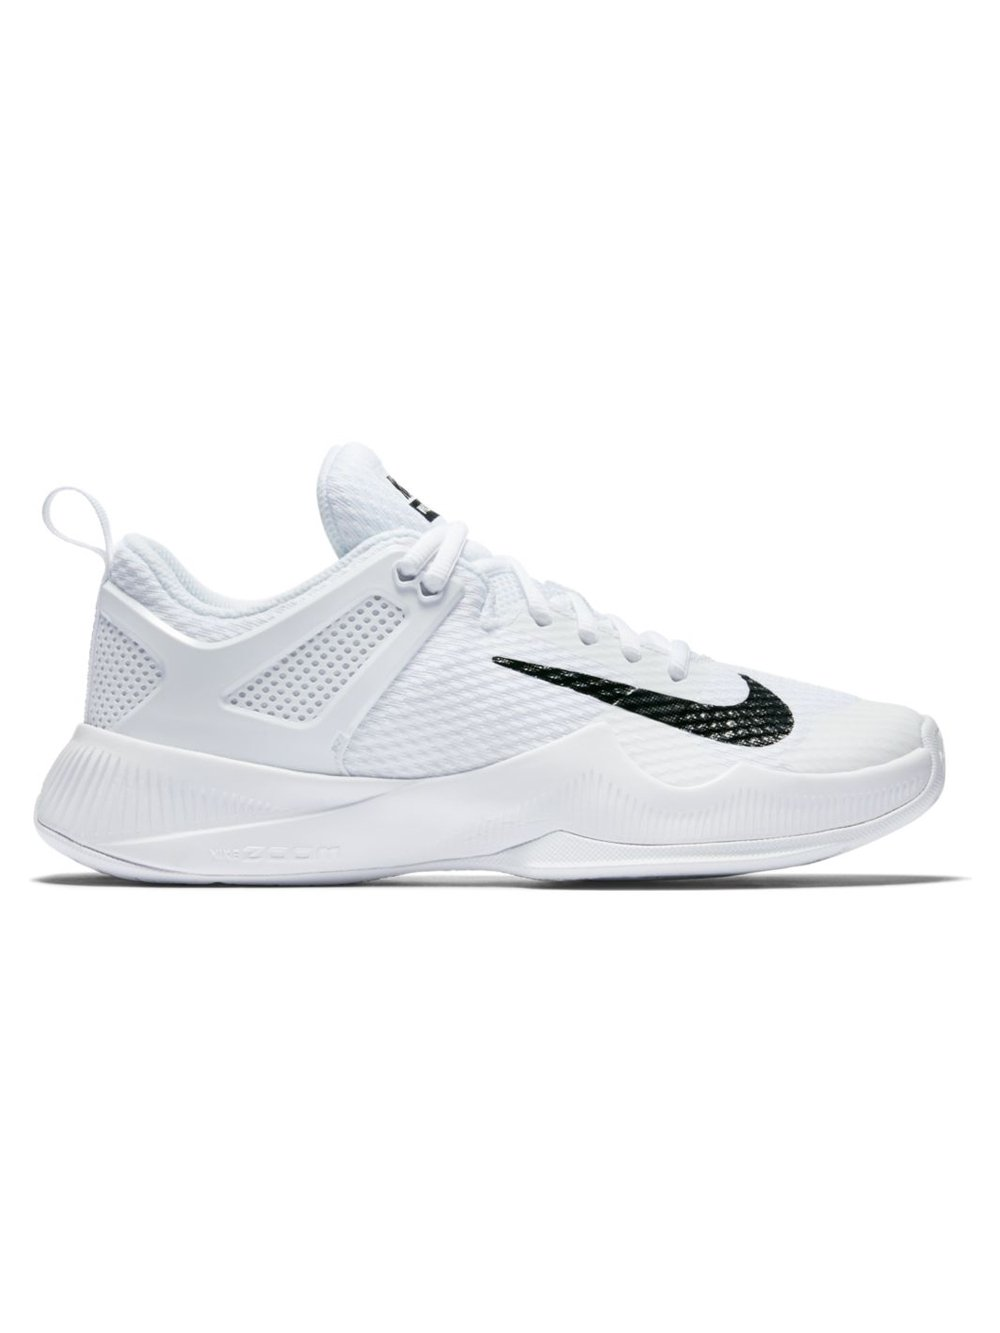 Nike Womens Wmns Air Zoom Hyperace, White / Black, 10.5 M US by NIKE (Image #2)